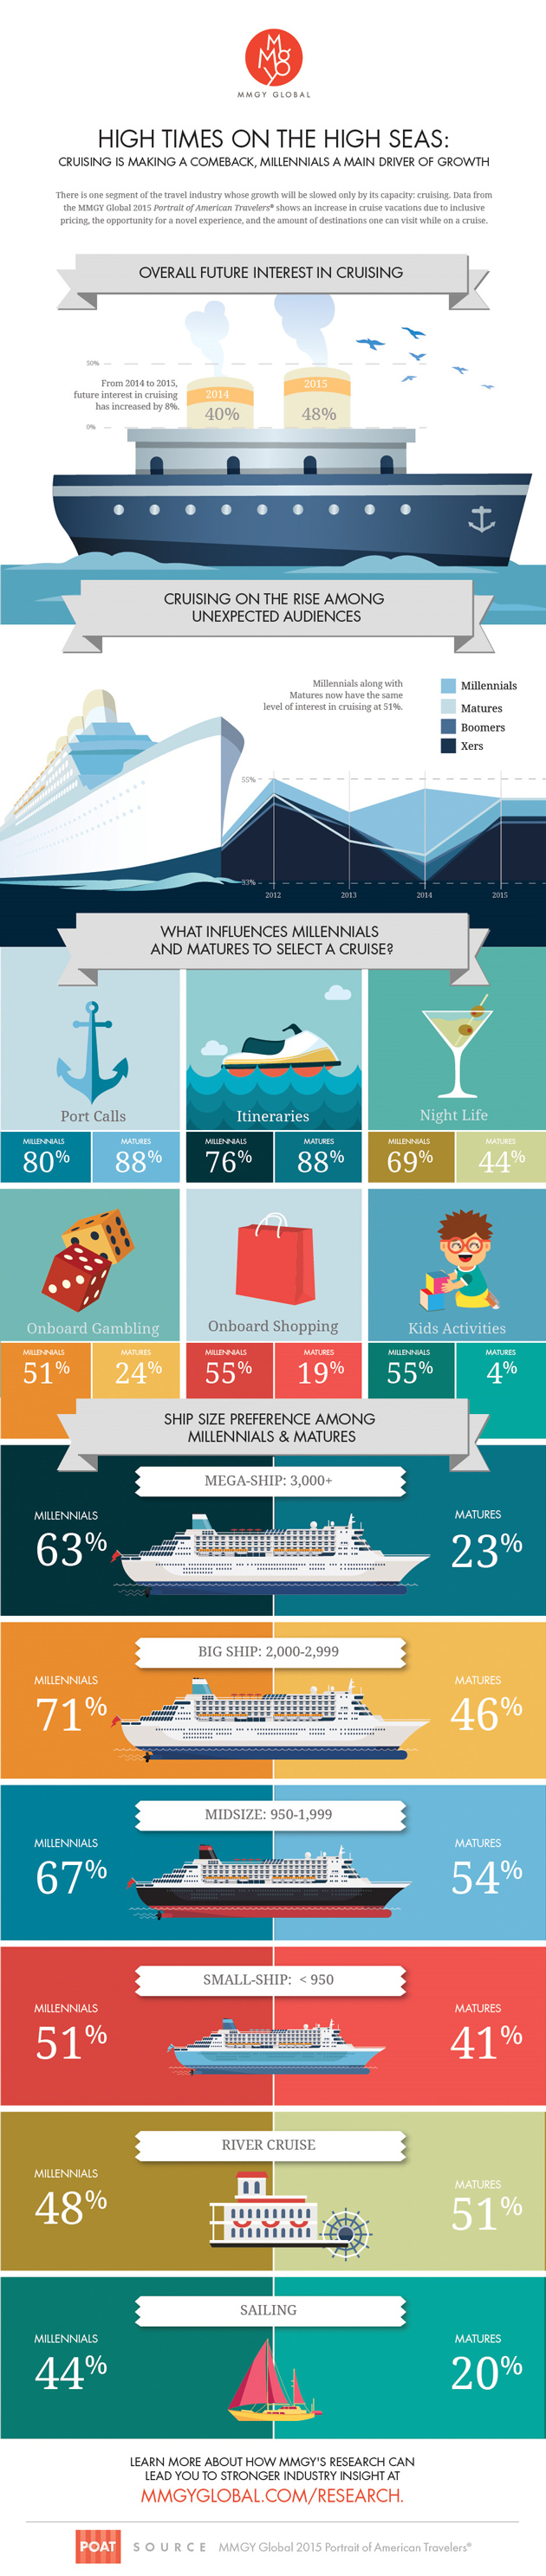 INFOGRAPHIC: Millennials and Matures Cruise Into the Future | TravelPulse